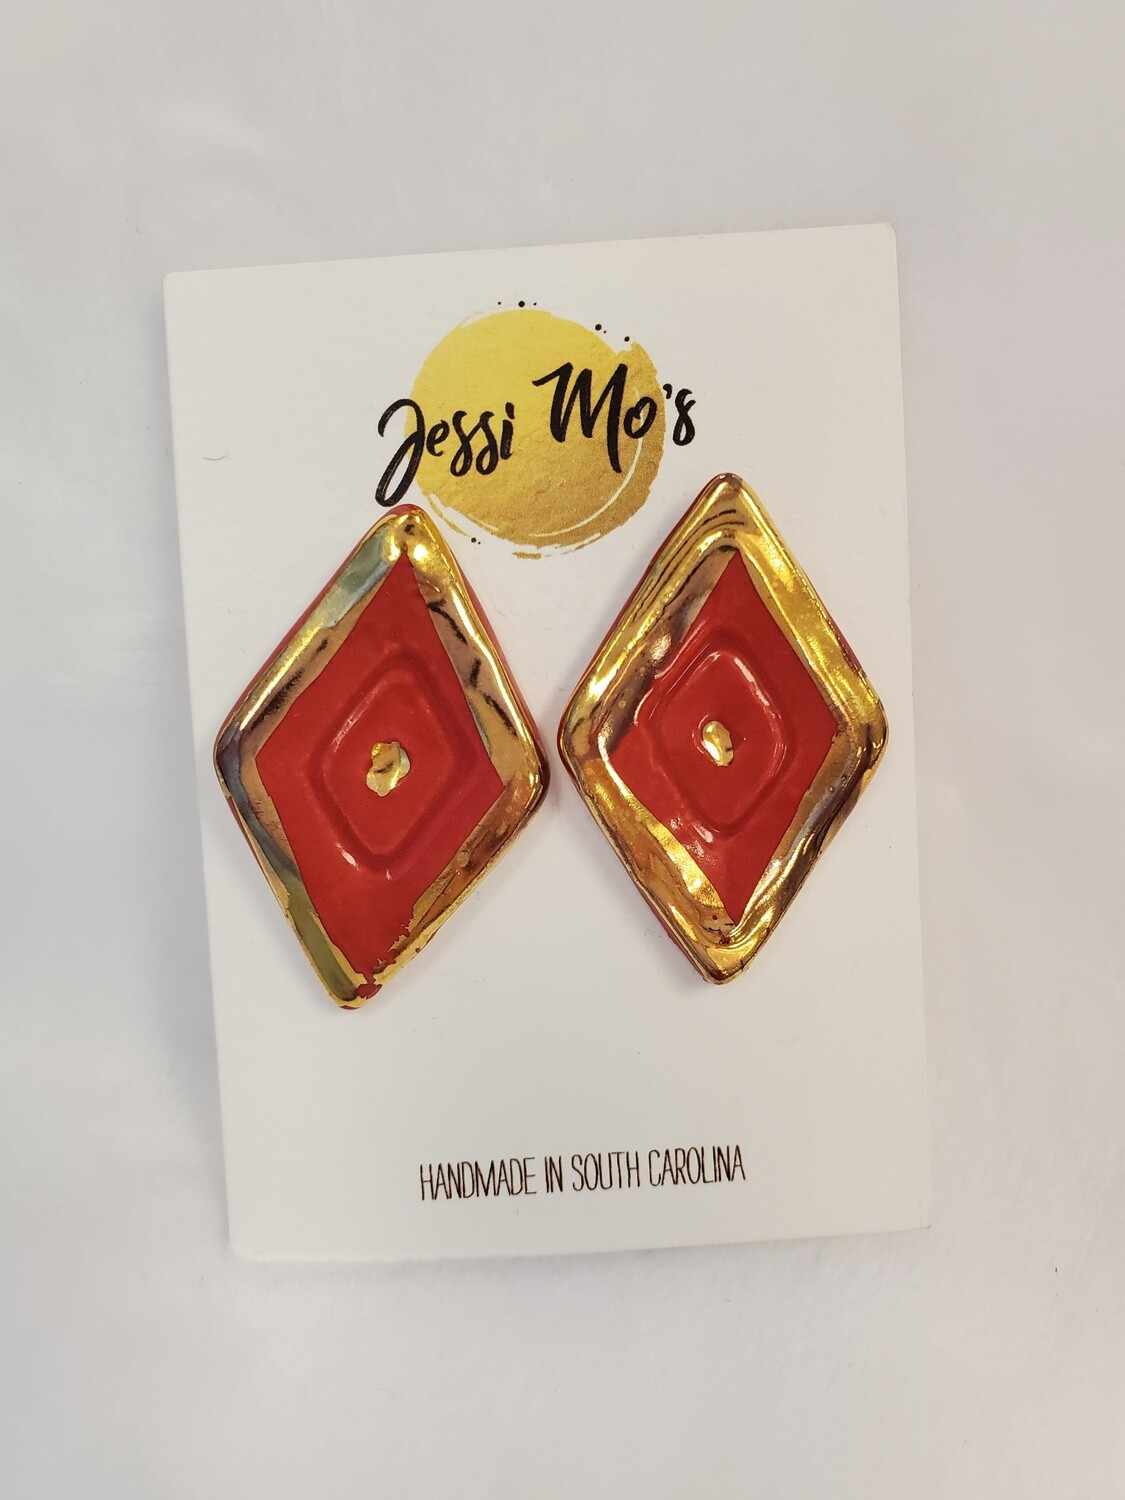 Jessi Mo's Ceramic Earrings- Hot Tamale Glaze- 4 Options